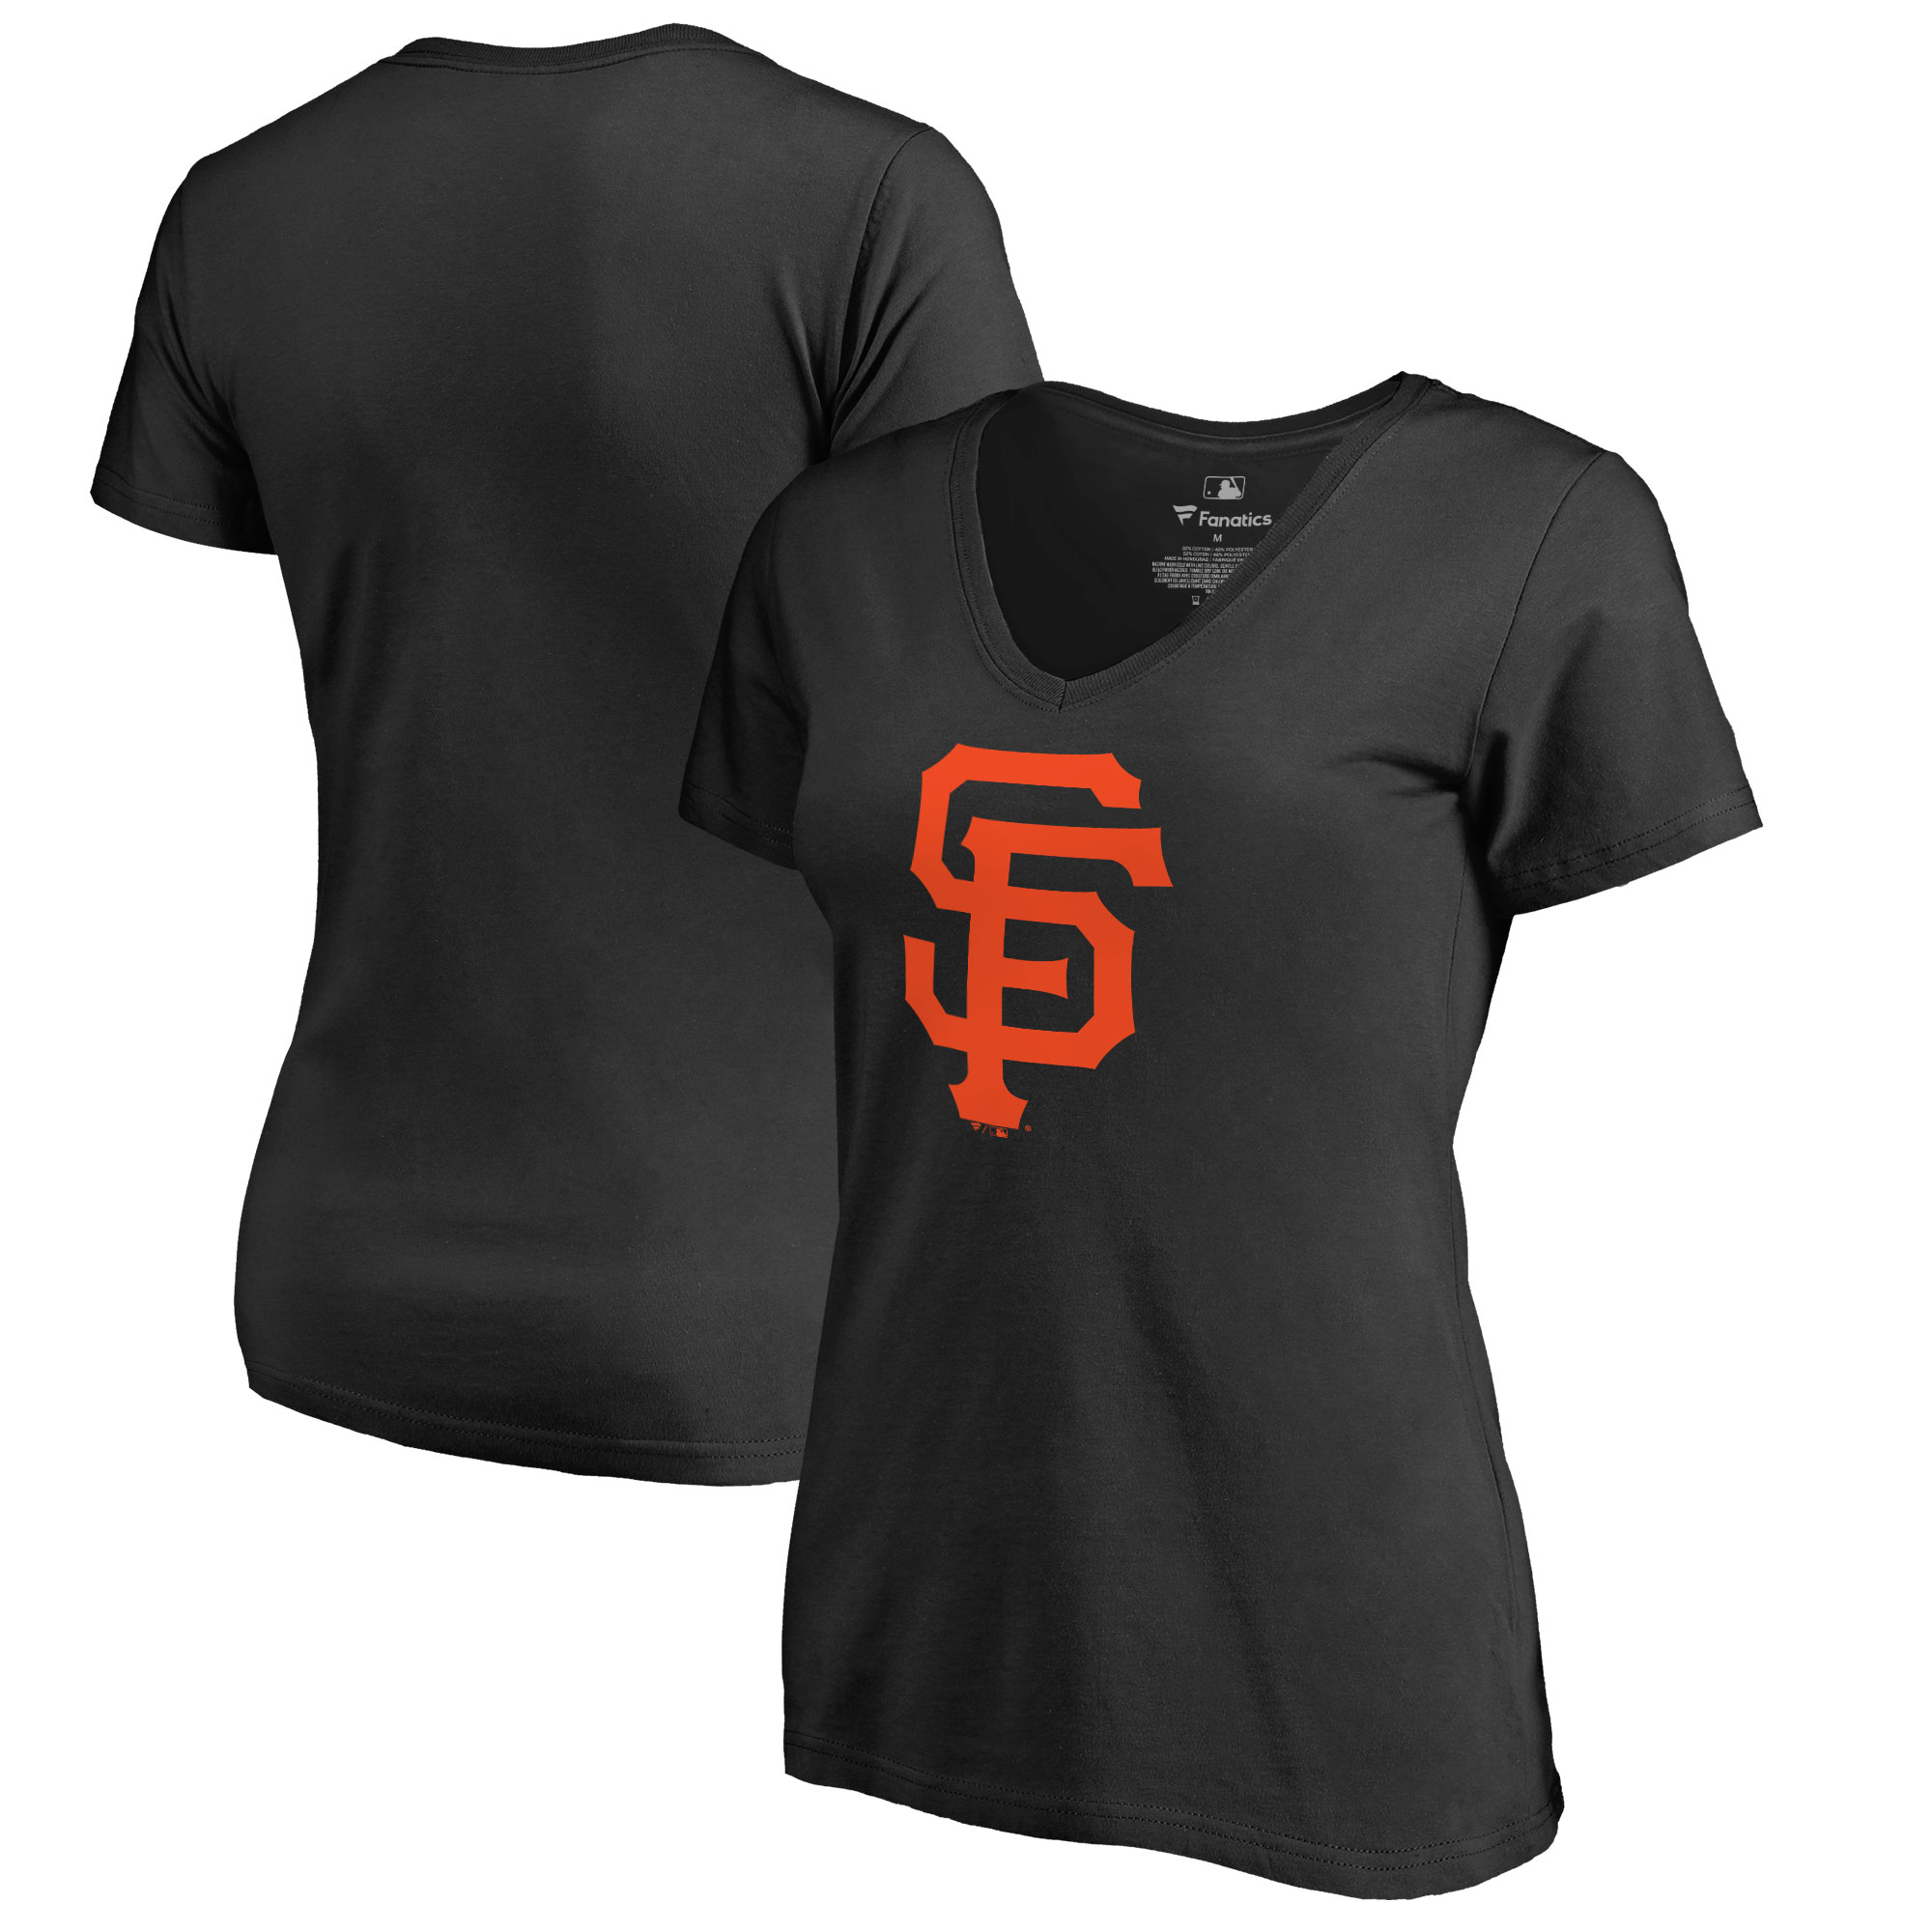 San Francisco Giants Women's Plus Sizes Primary Team Logo T-Shirt - Black